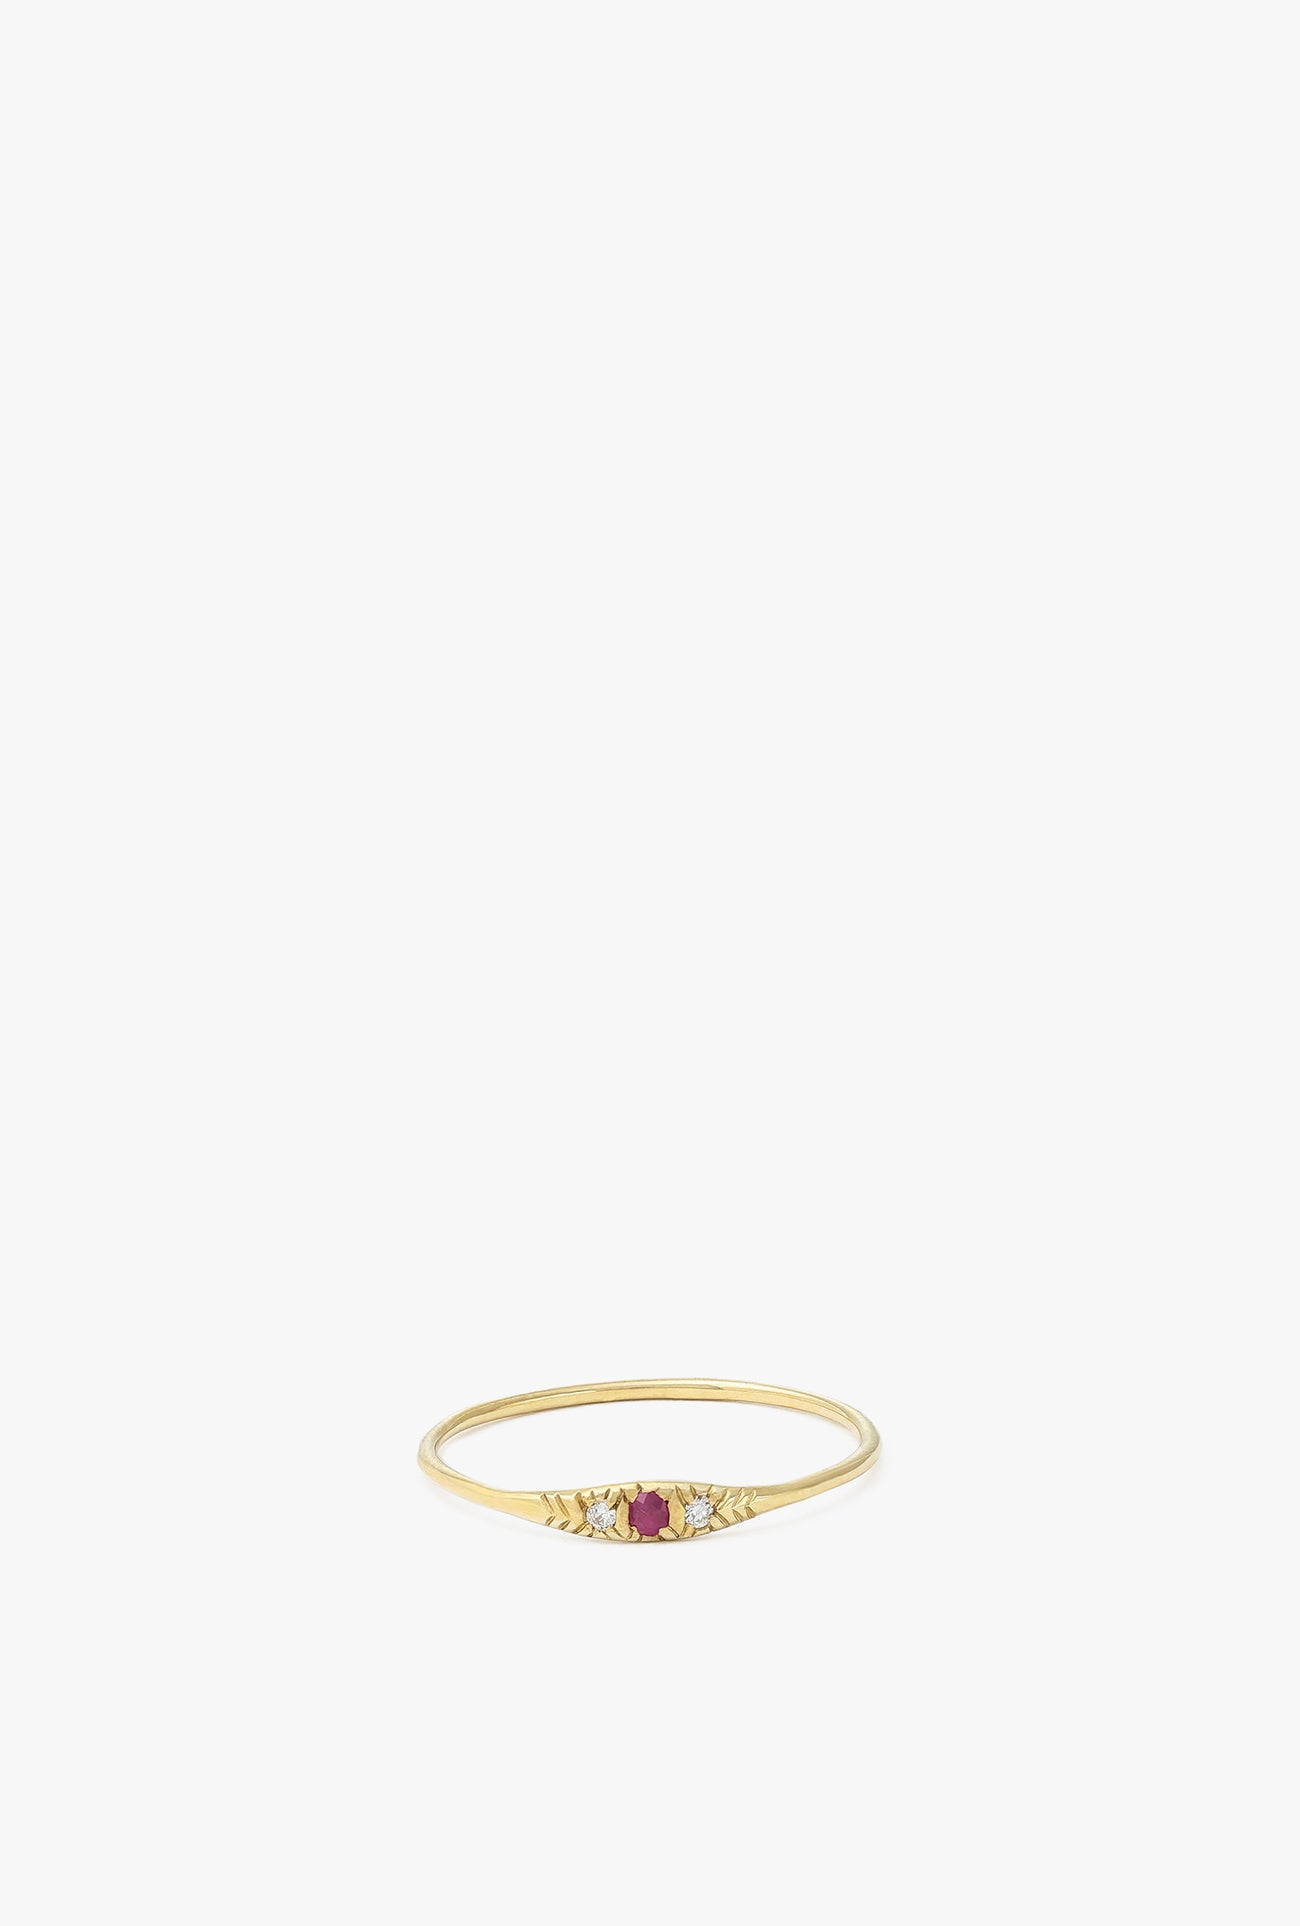 Pave Ruby Ovate I Ring